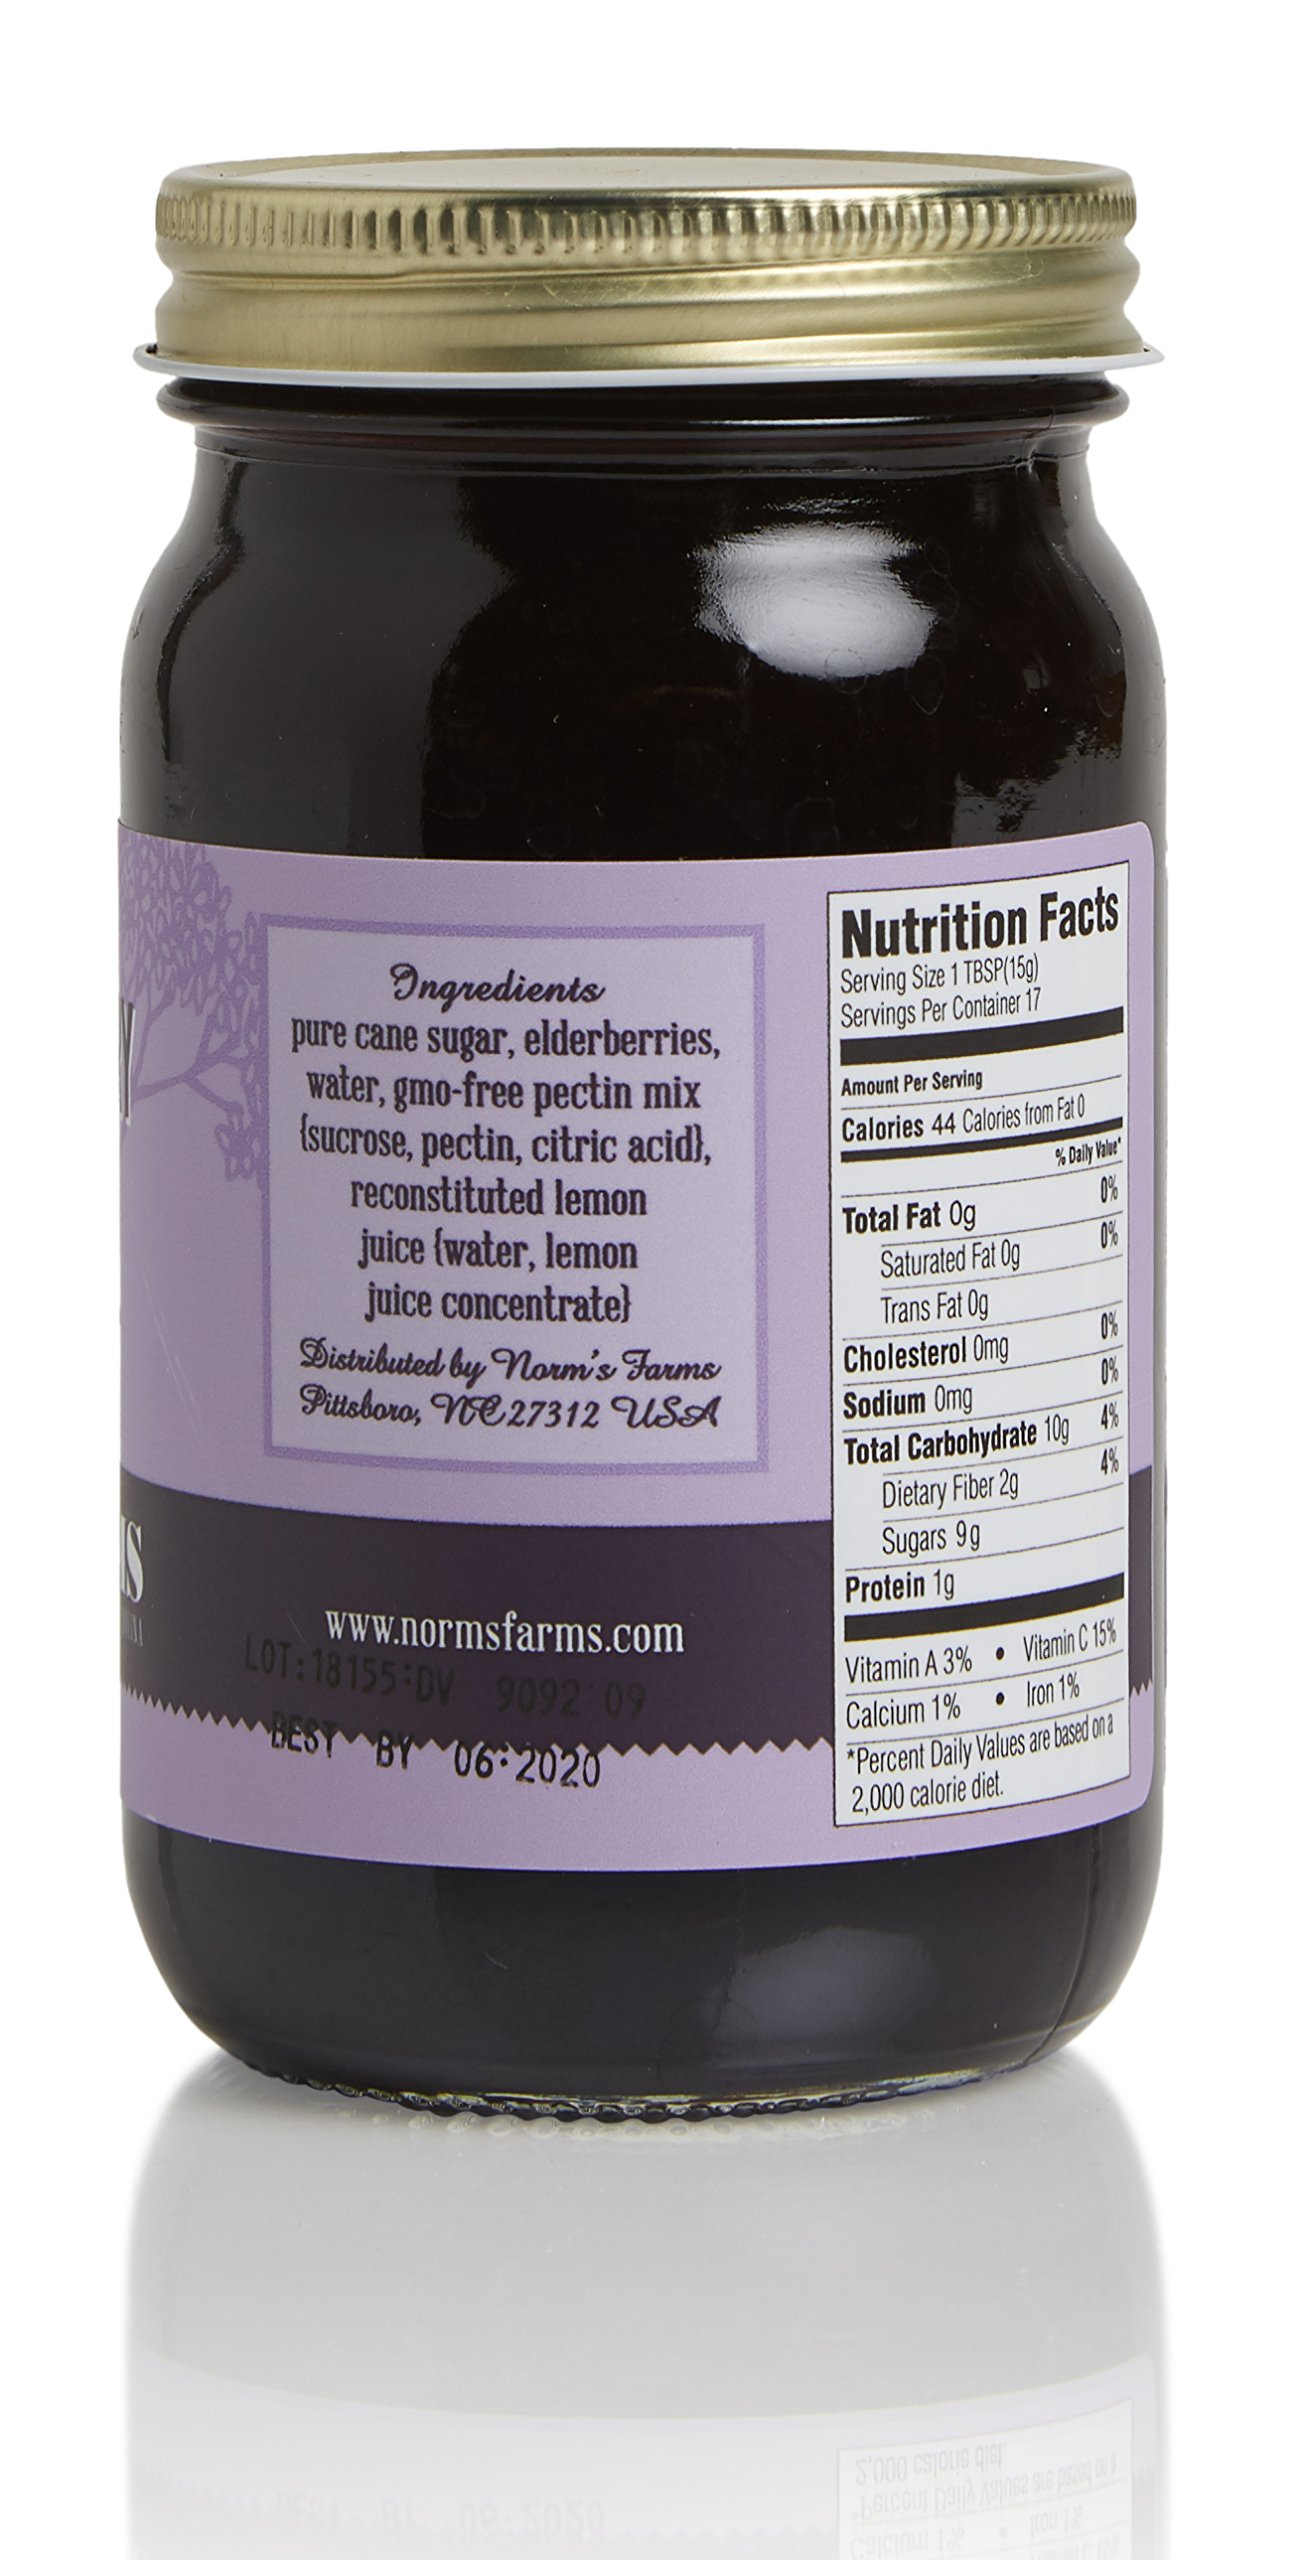 Norm's Farms Elderberry Jam Pack, Delicious and Flavor Packed, 9 Ounce Jar, Pack of 3